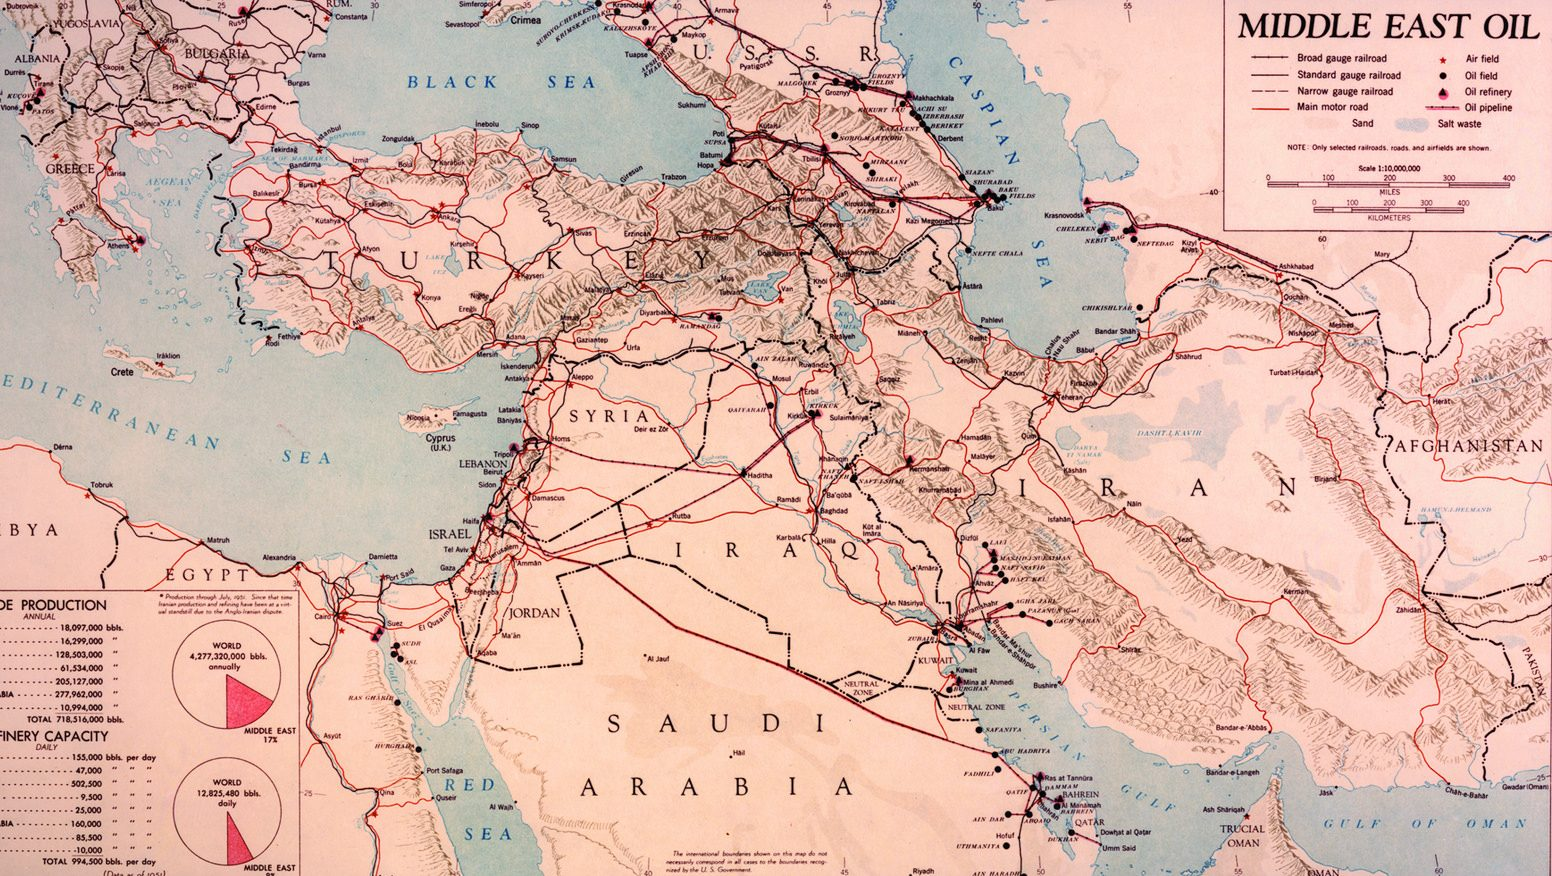 Oil capacity and production throughout the Middle East in 1951. (Central Intelligence Agency)